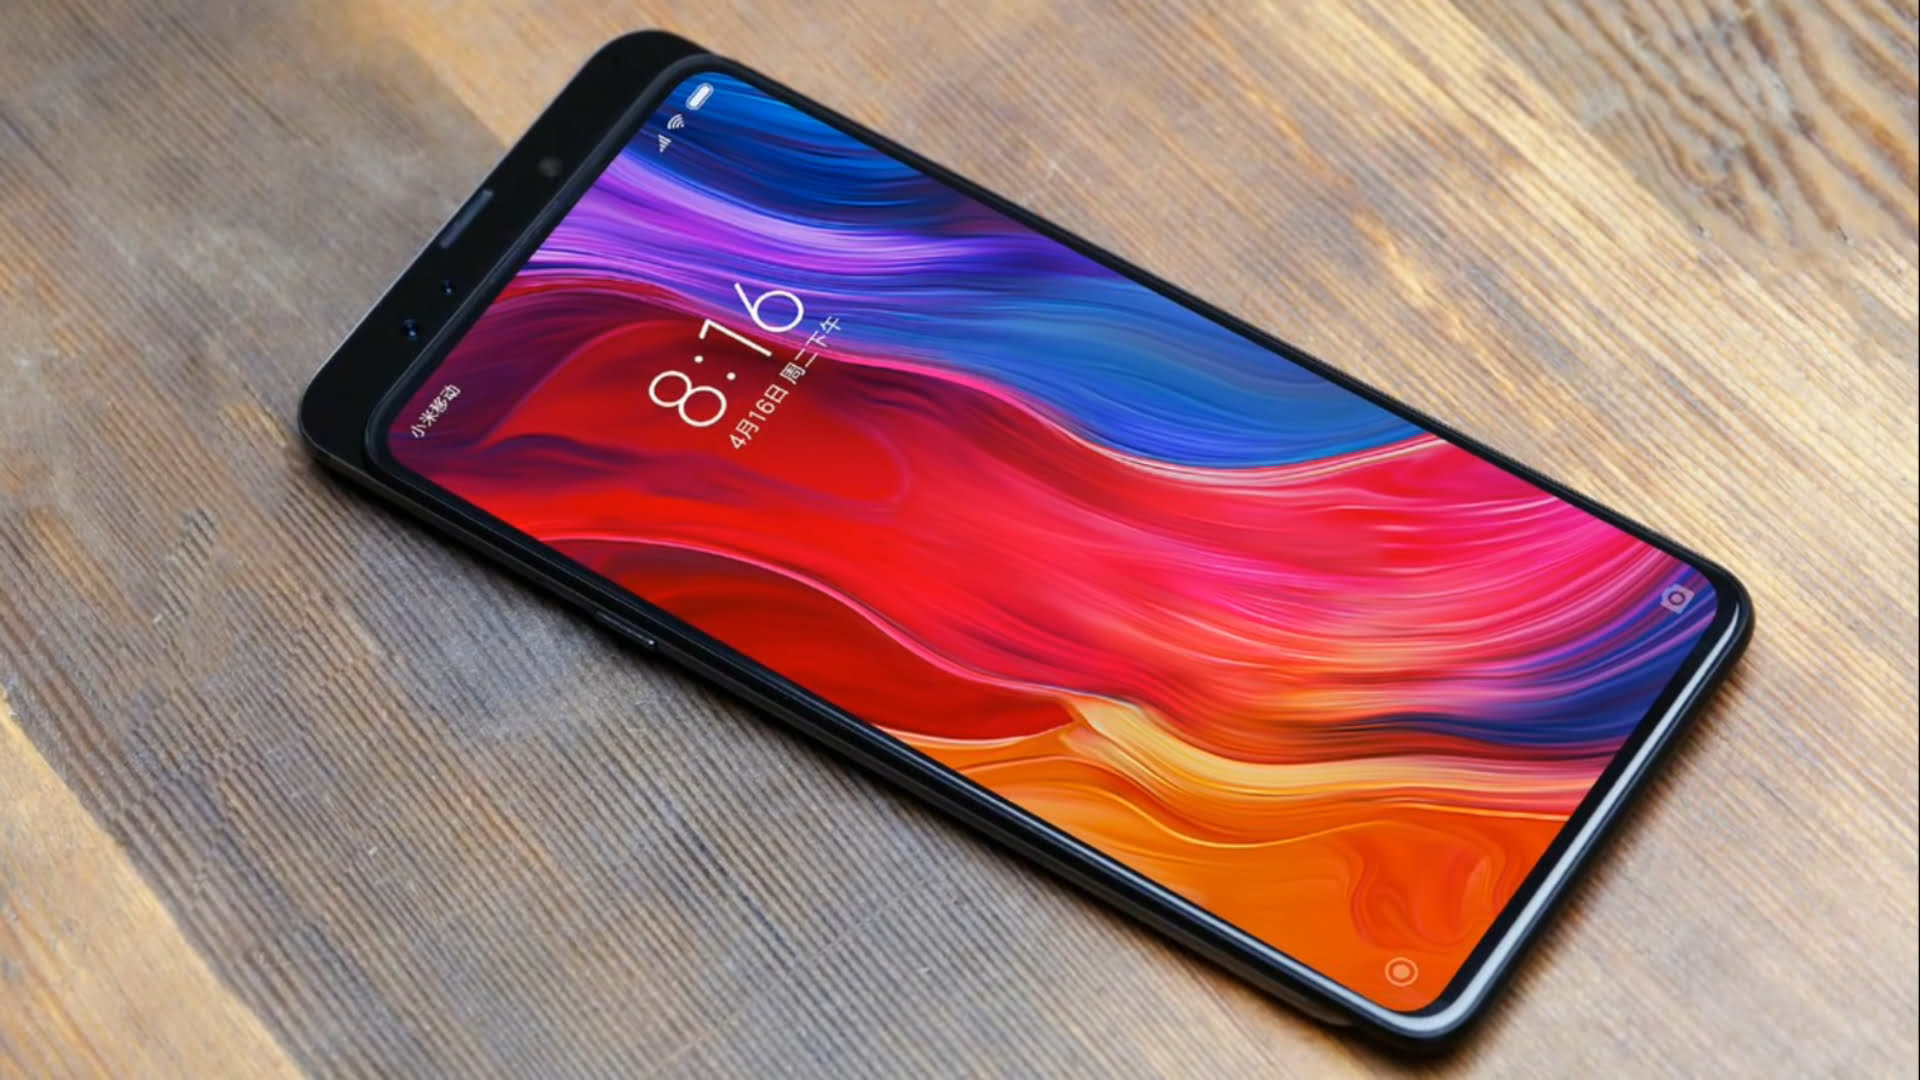 Mi Mix 3 will support 5G and 10GB of RAM – Confirmed